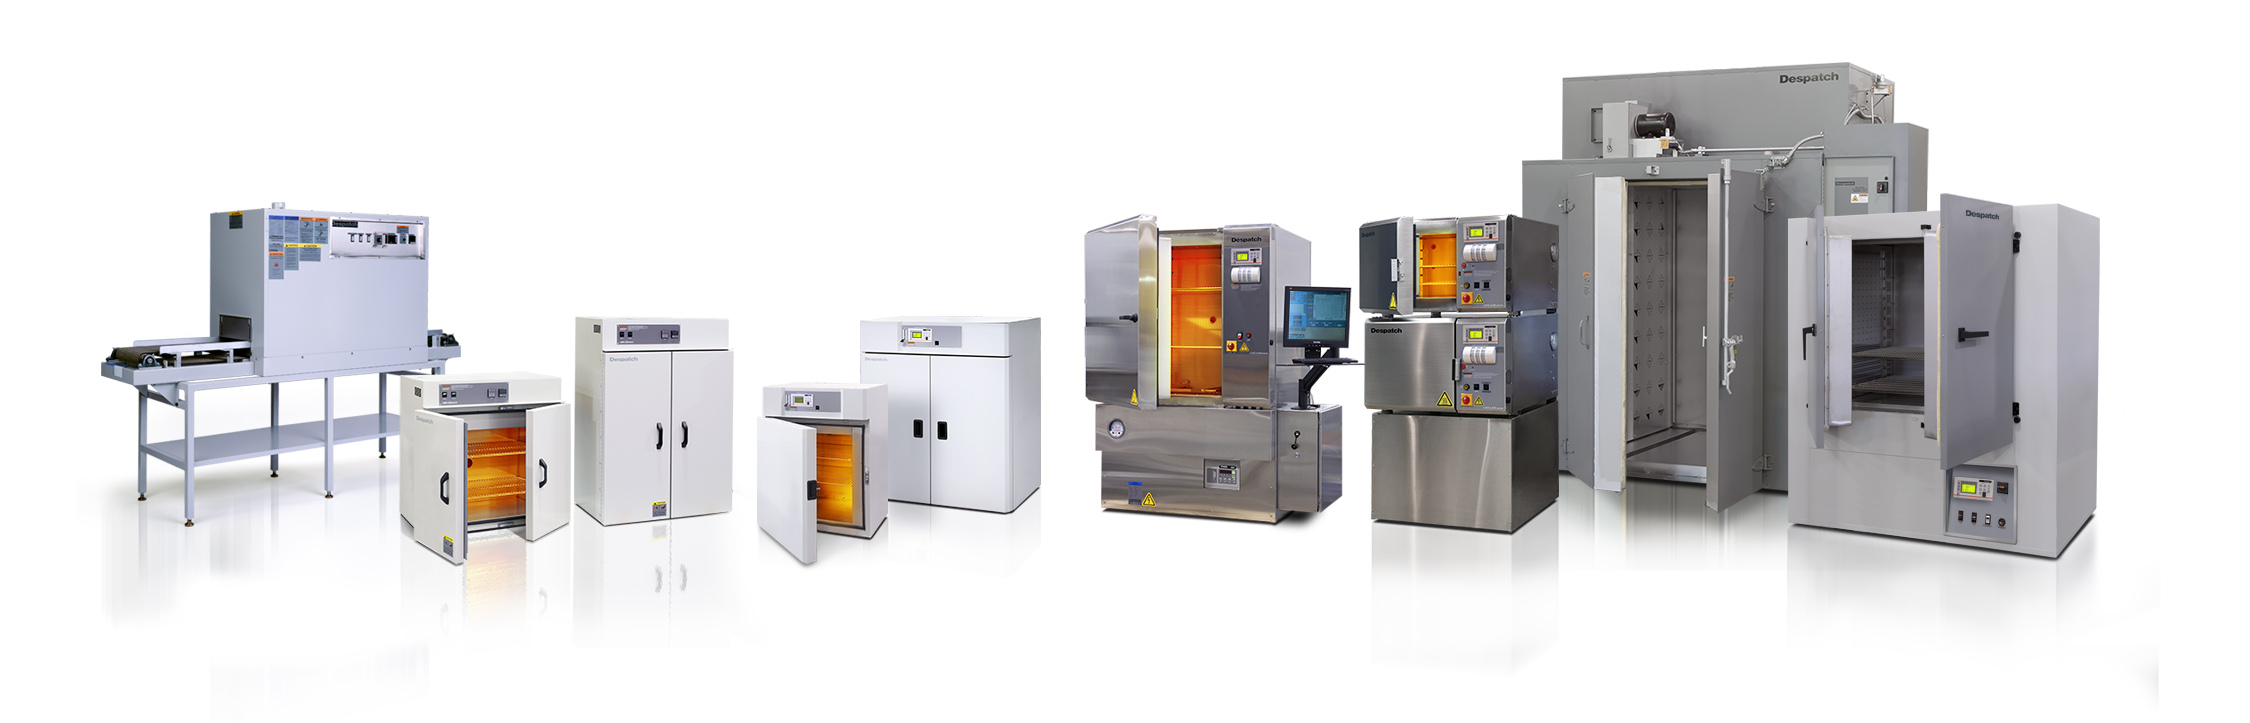 Top 10 Industrial Oven Manufacturers in The United States